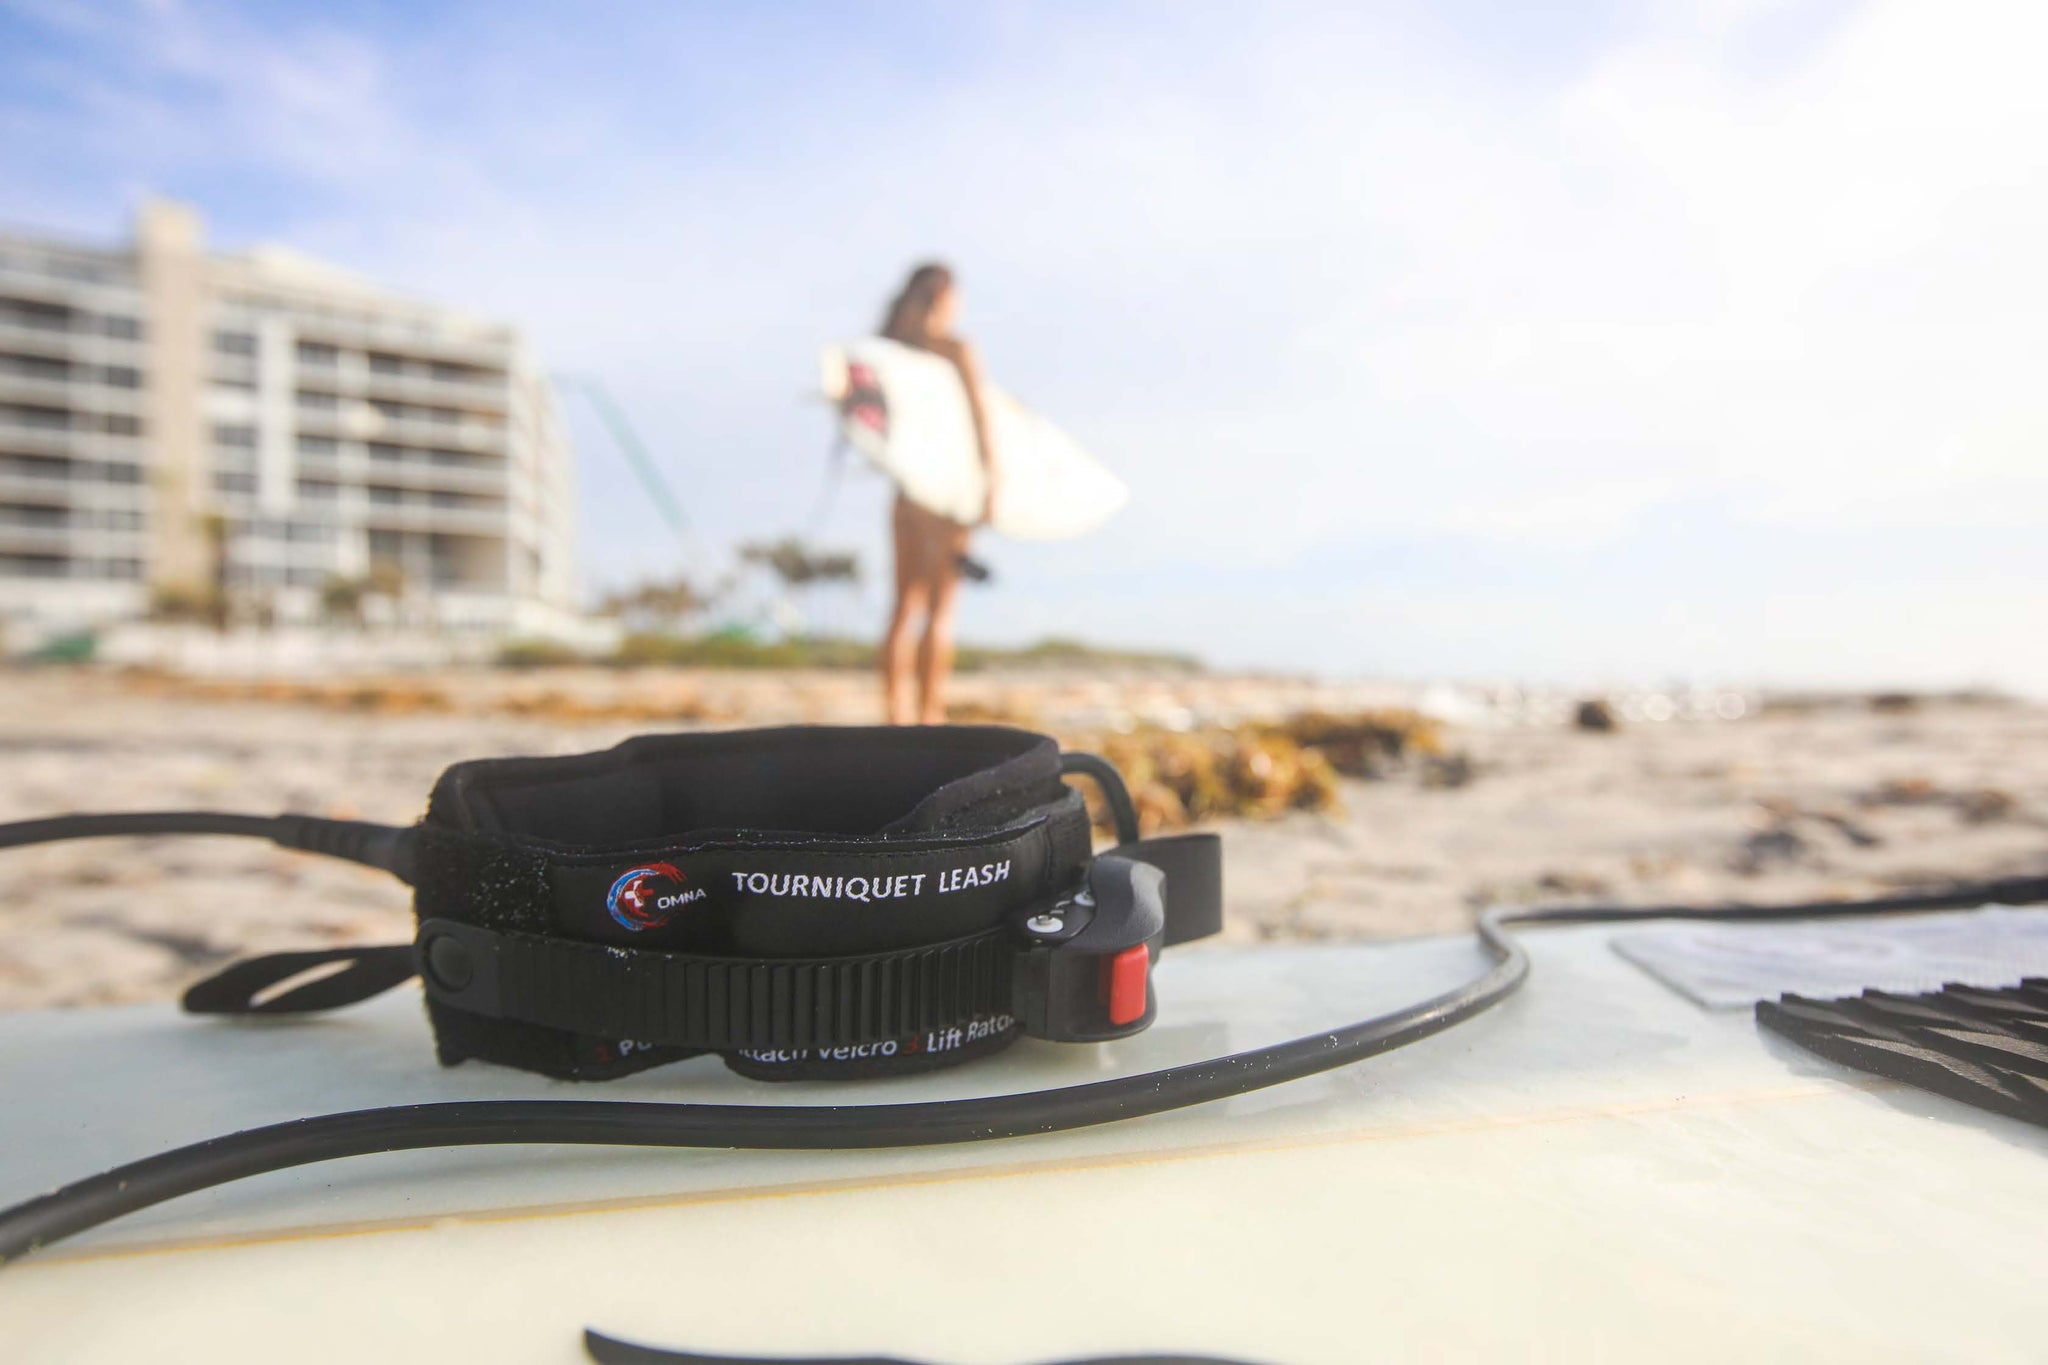 OMNA TOURNIQUET SURFBOARD LEASH